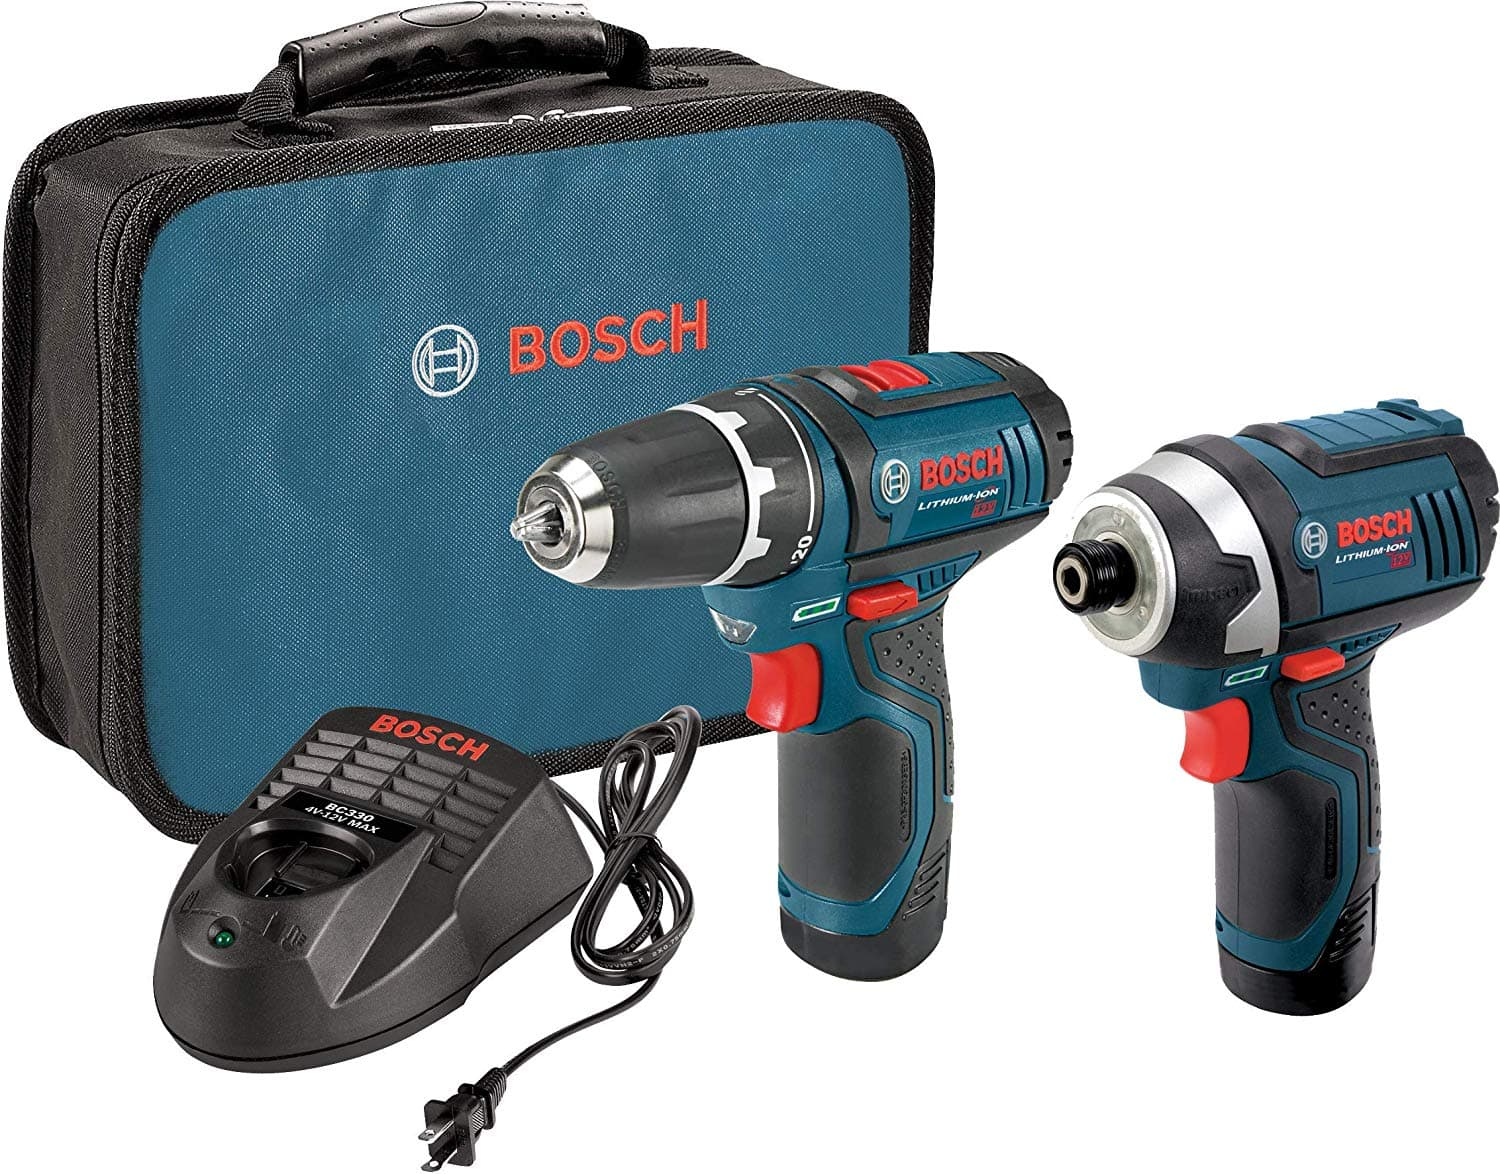 Bosch Power Tools Combo Kit CLPK22-120 - 12-Volt Cordless Tool Set (Drill/Driver and Impact Driver) with 2 Batteries, Charger and Case $81 was $99